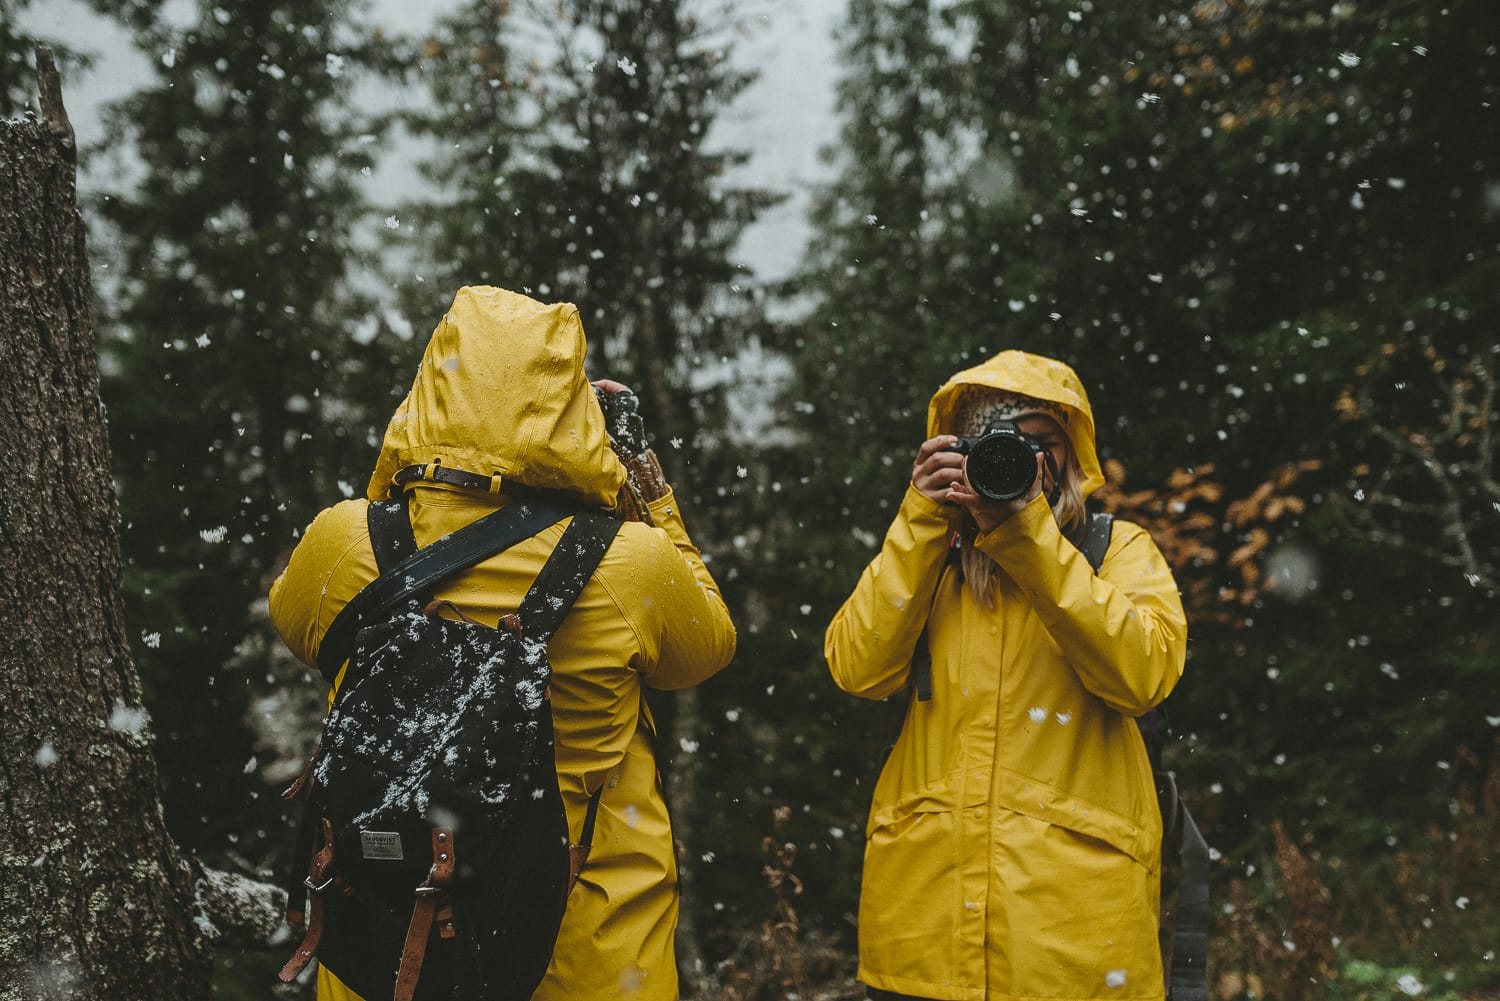 two women in yellow rain coats taking photos